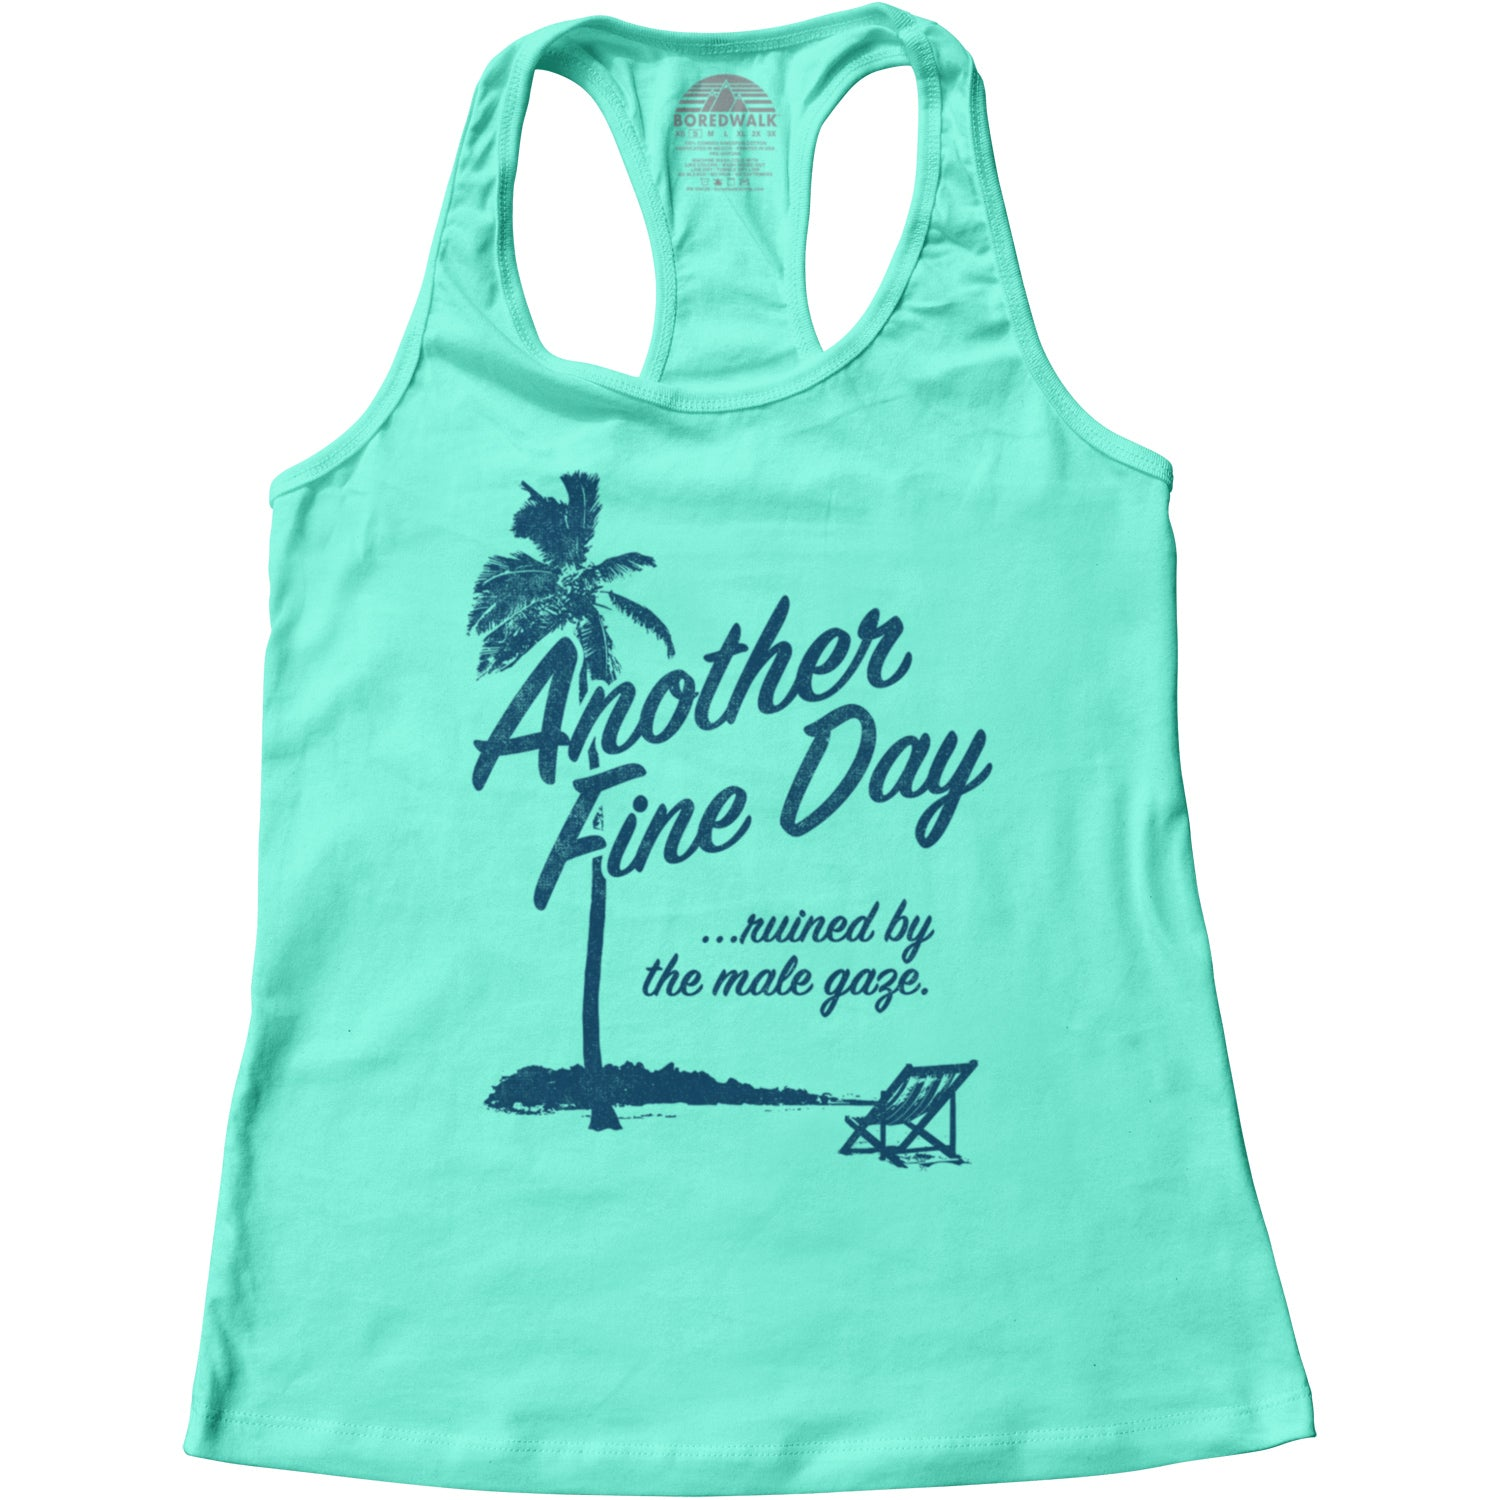 Women's Another Fine Day Ruined by the Male Gaze Racerback Tank Top